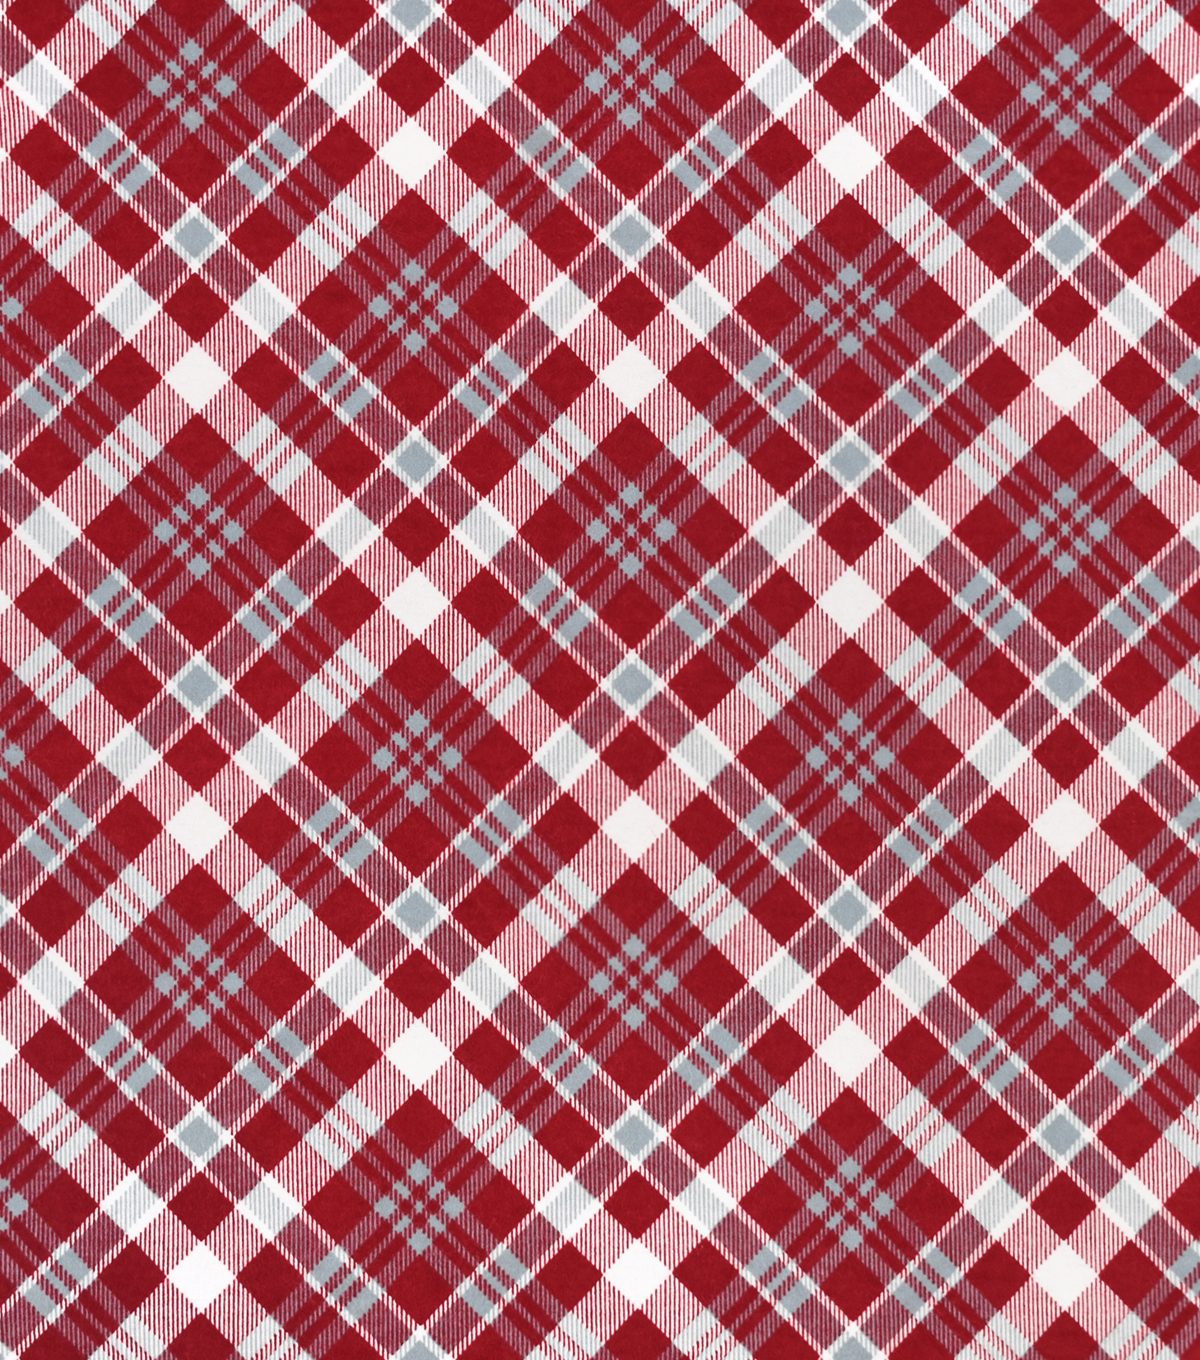 Snuggle Flannel Fabric-Red & Gray Bias Plaid